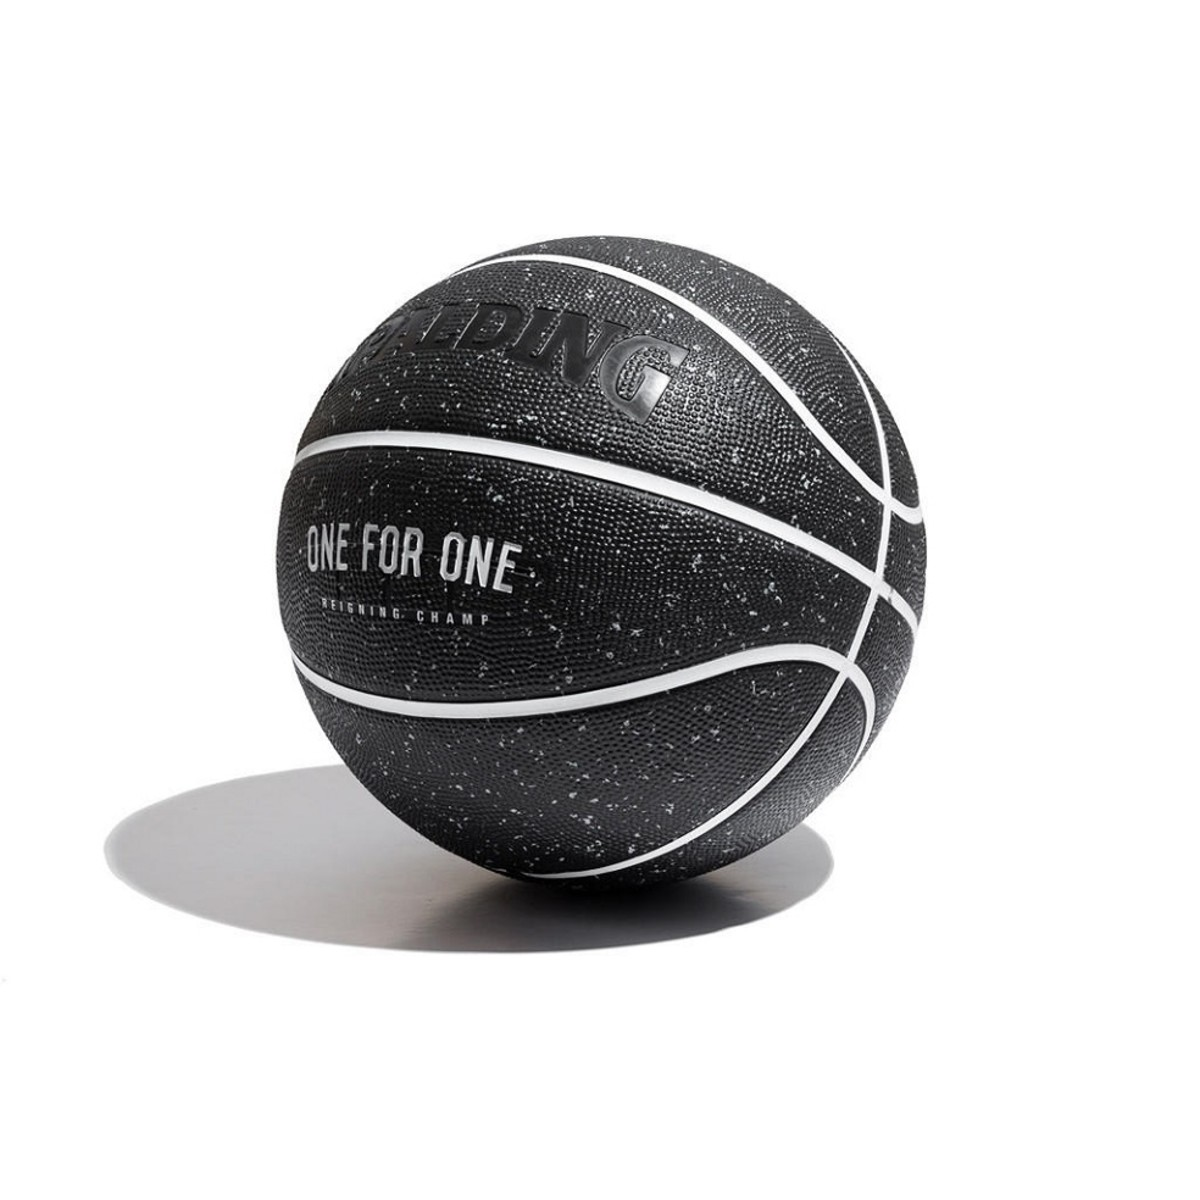 reigning-champ-x-spalding-basketball-3